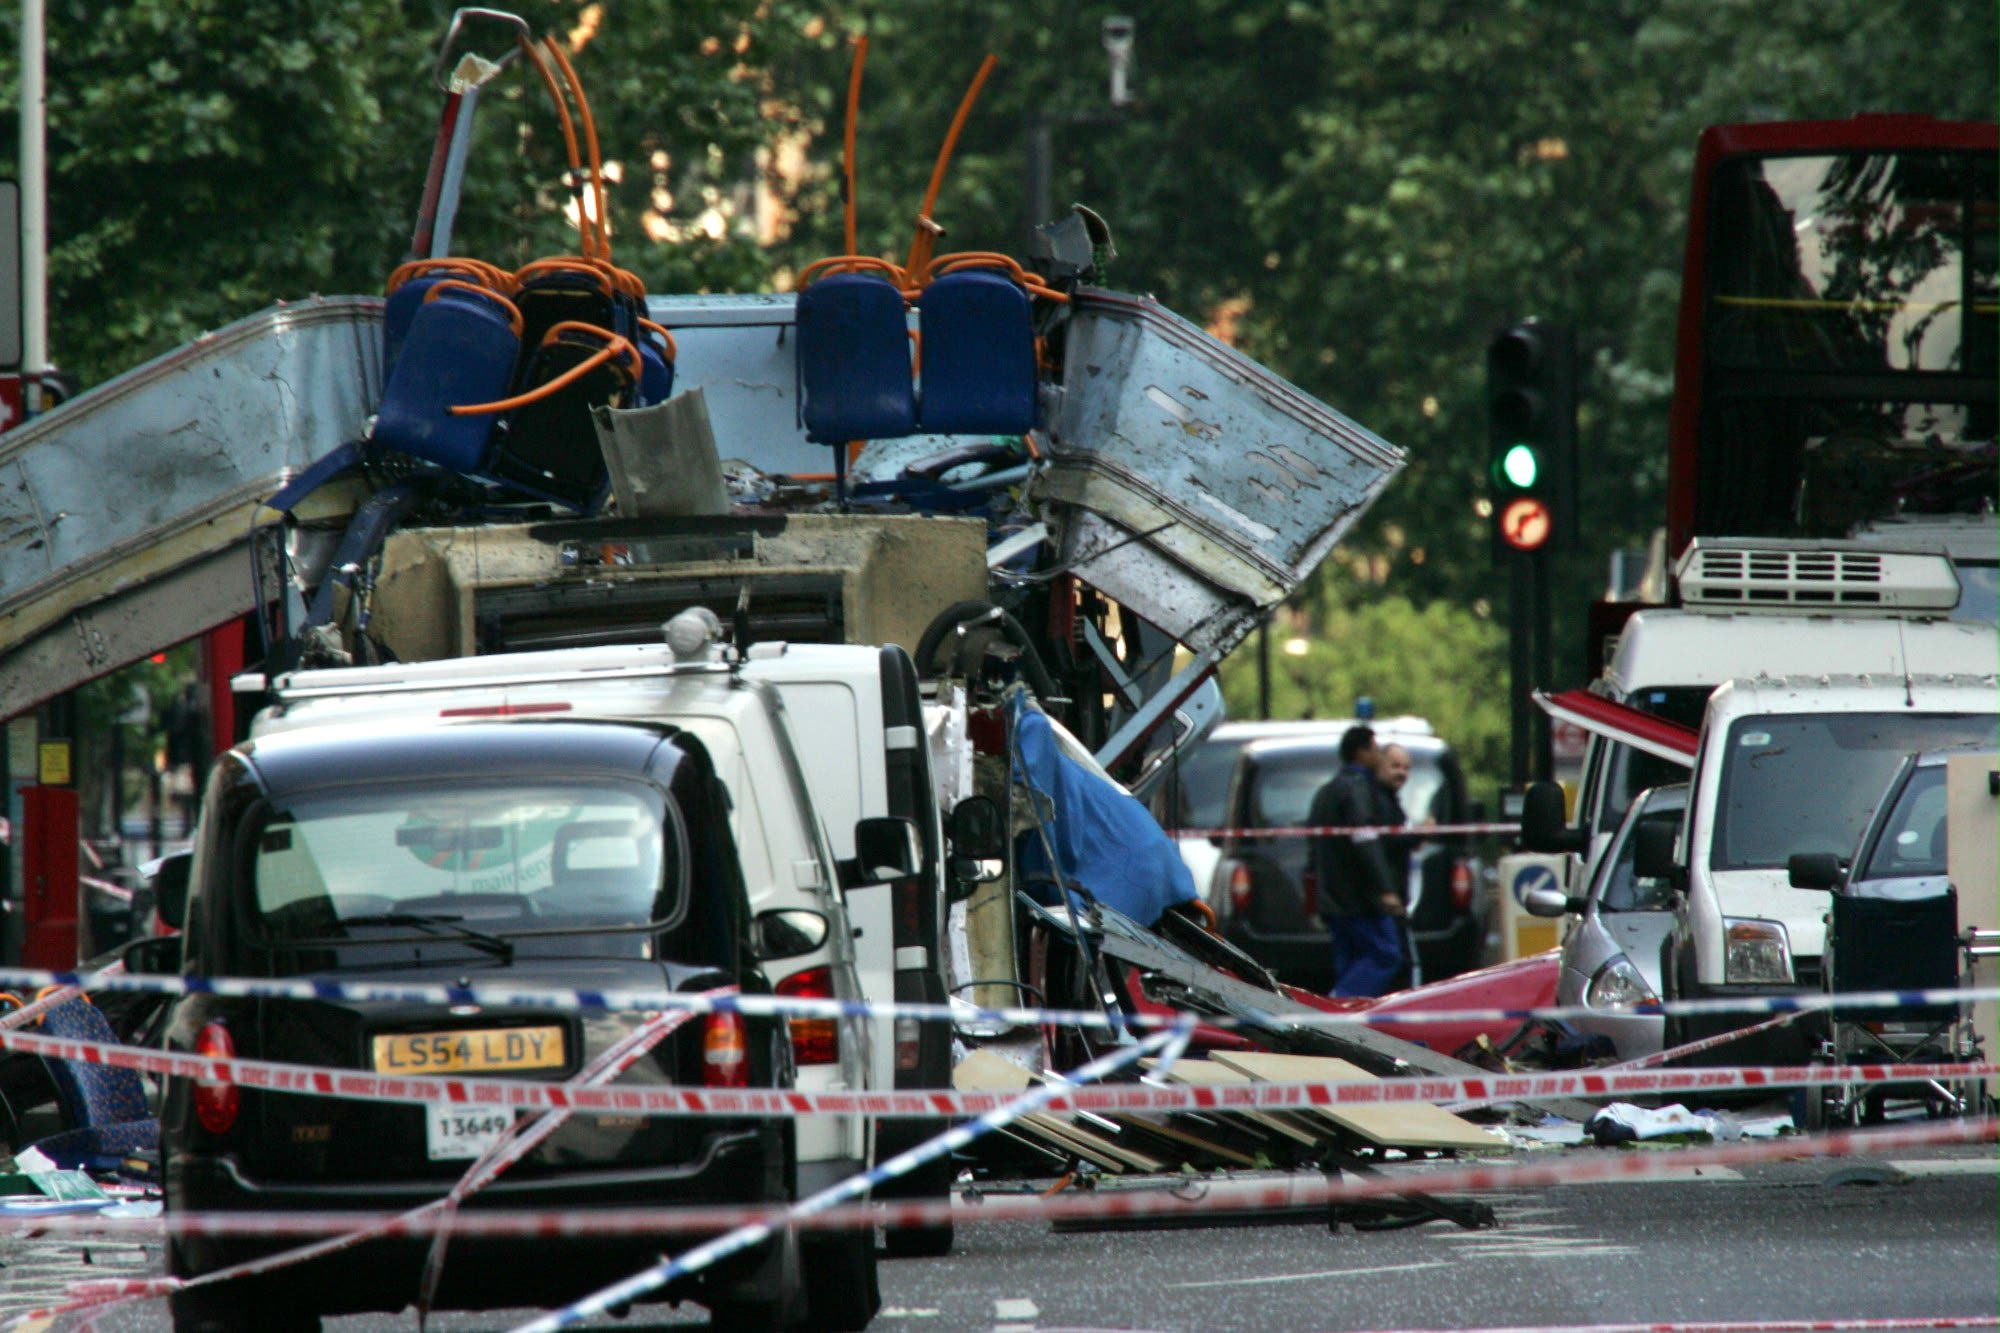 The wreckage of a double-decker bus with its top blown off and damaged cars scattered on the road at Tavistock Square in central London in this July 7, 2005. (File Photo:AP)